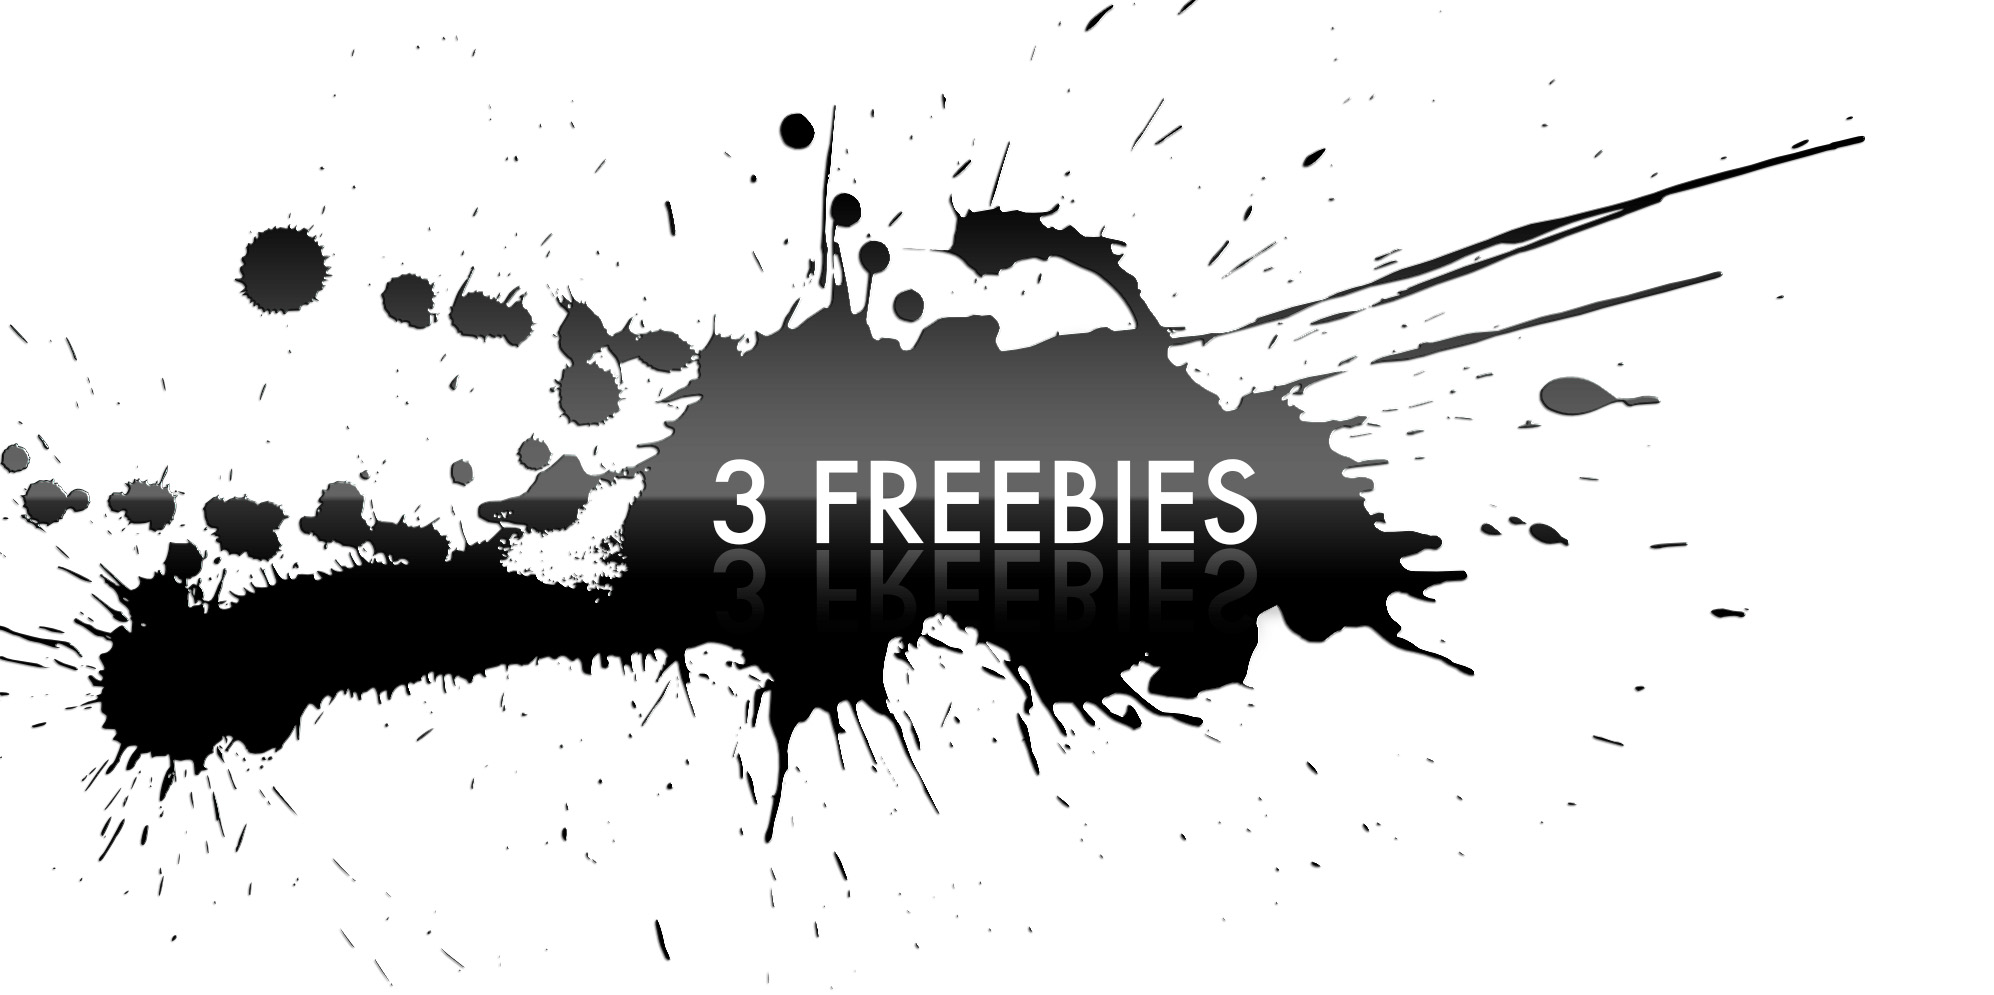 3 Freebies - Splash.jpg